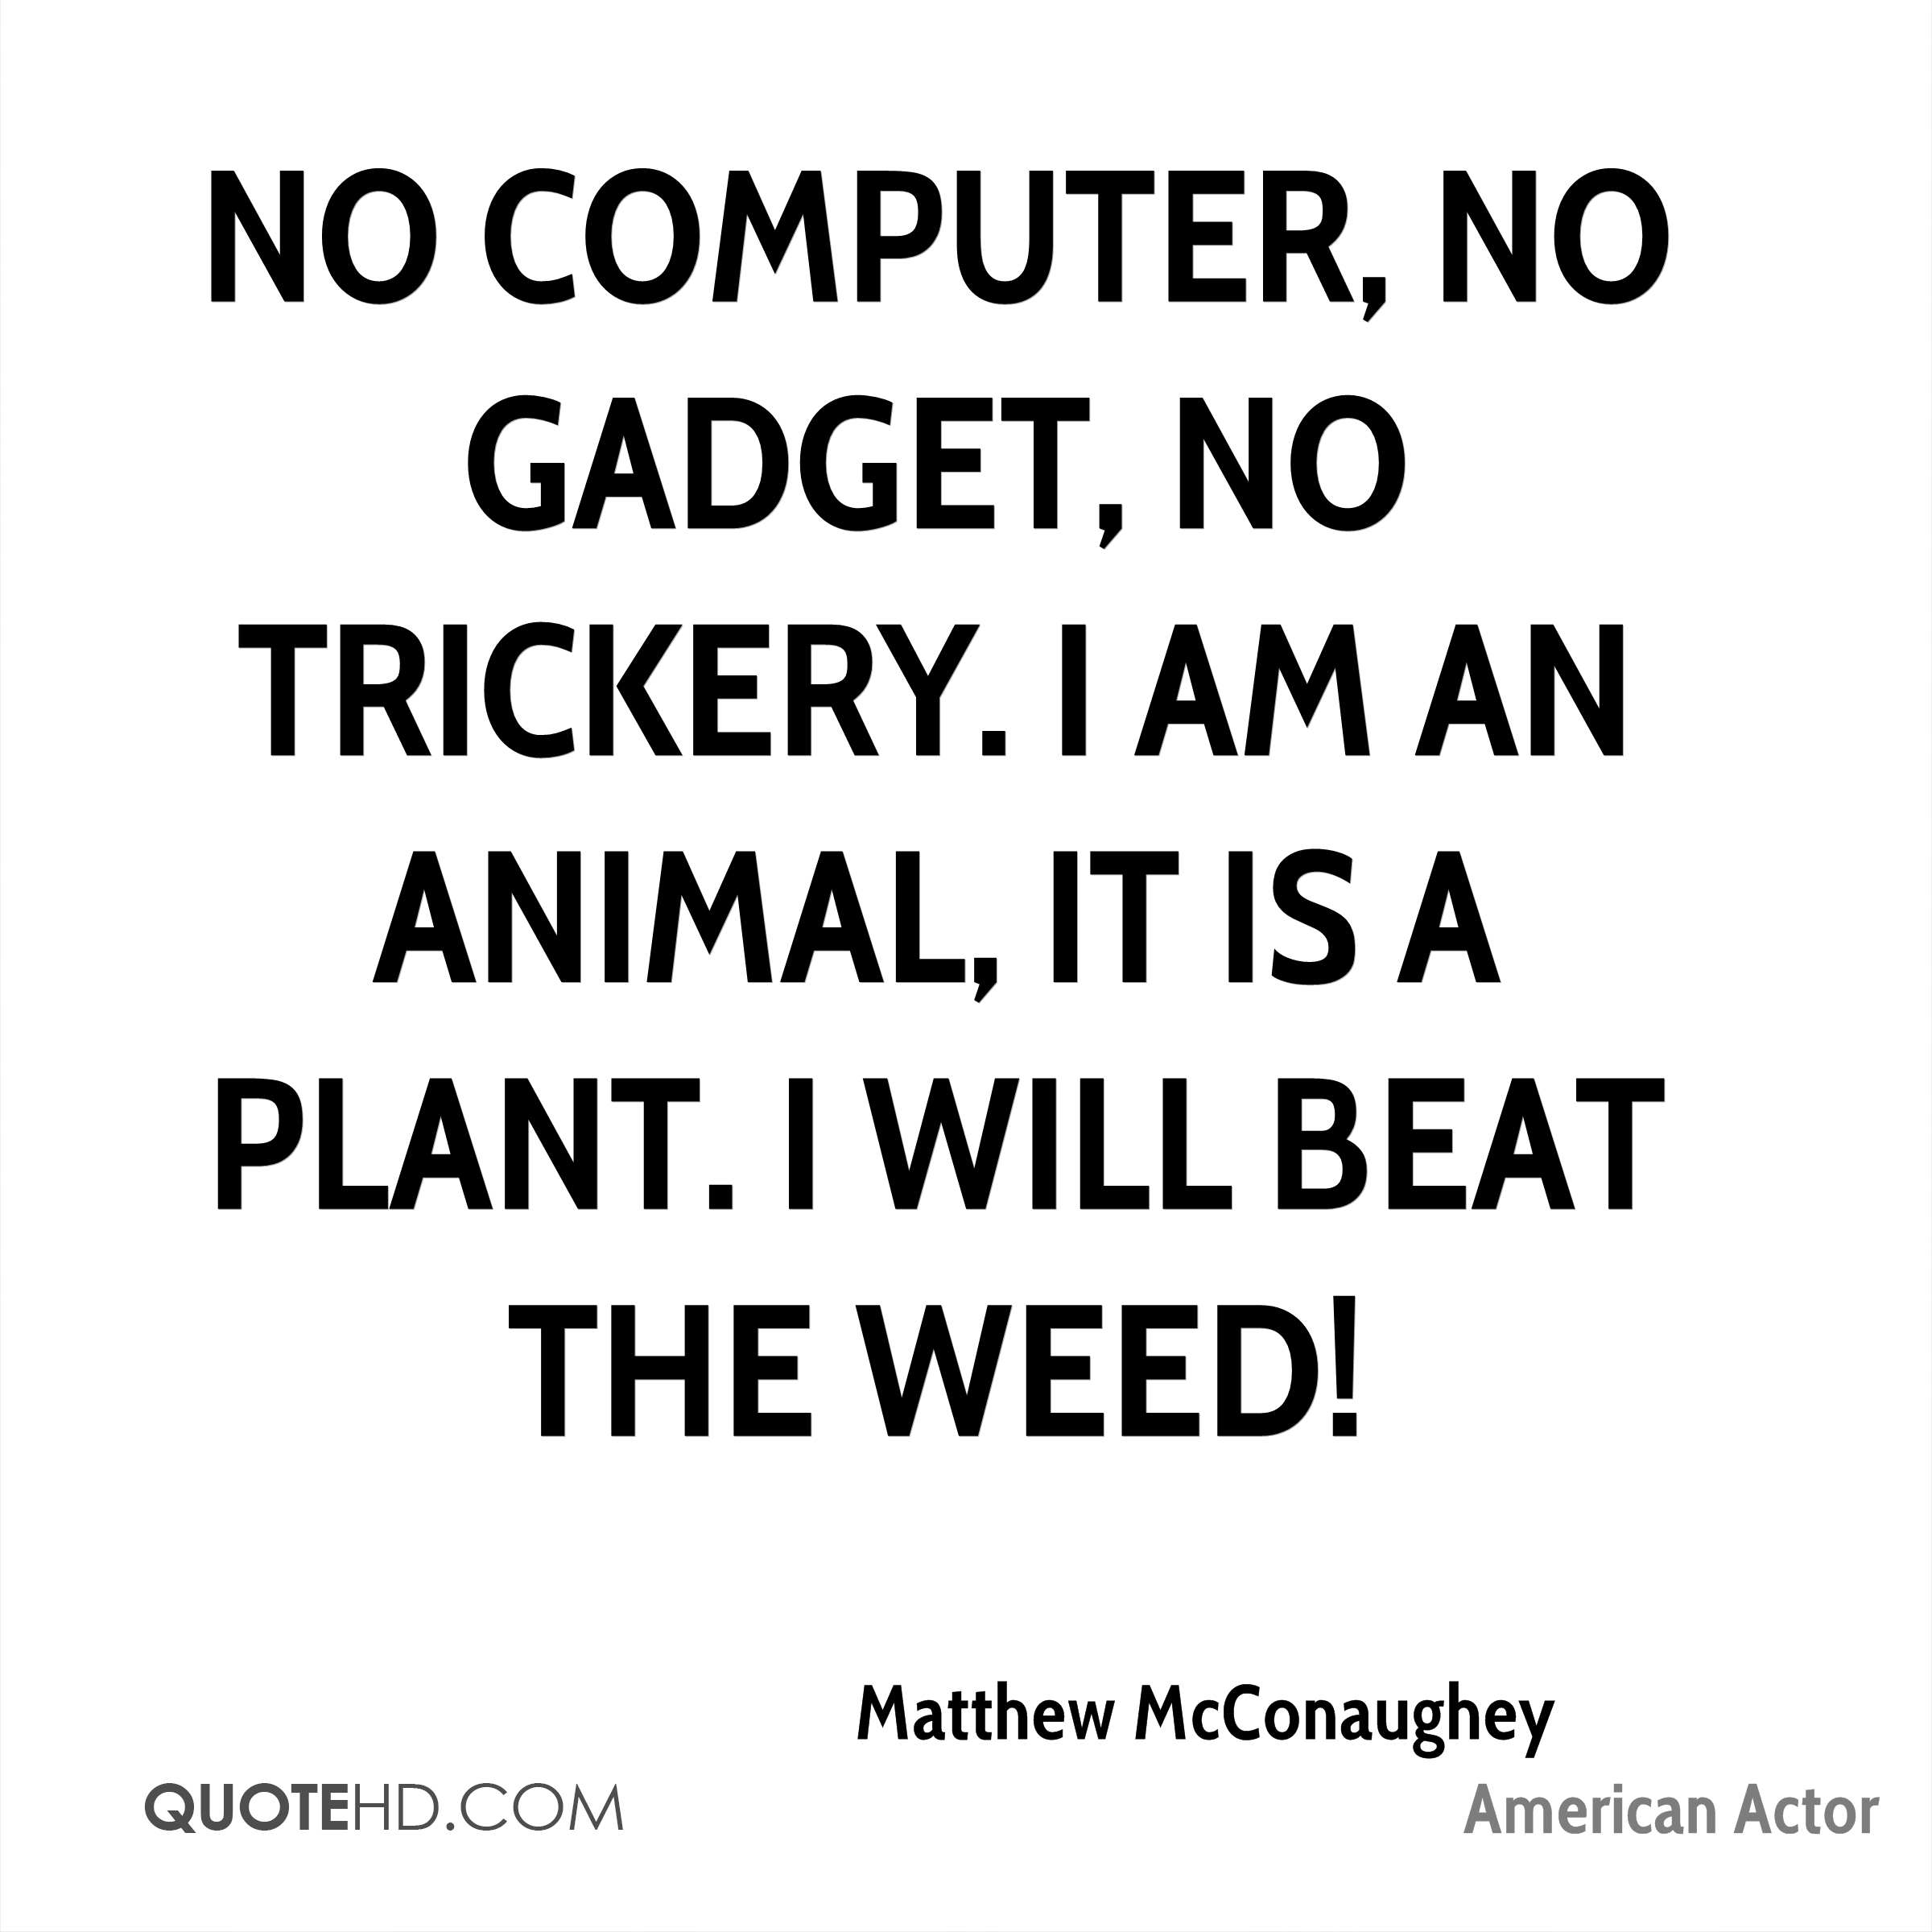 No computer, no gadget, no trickery. I am an animal, it is a plant. I will beat the weed!